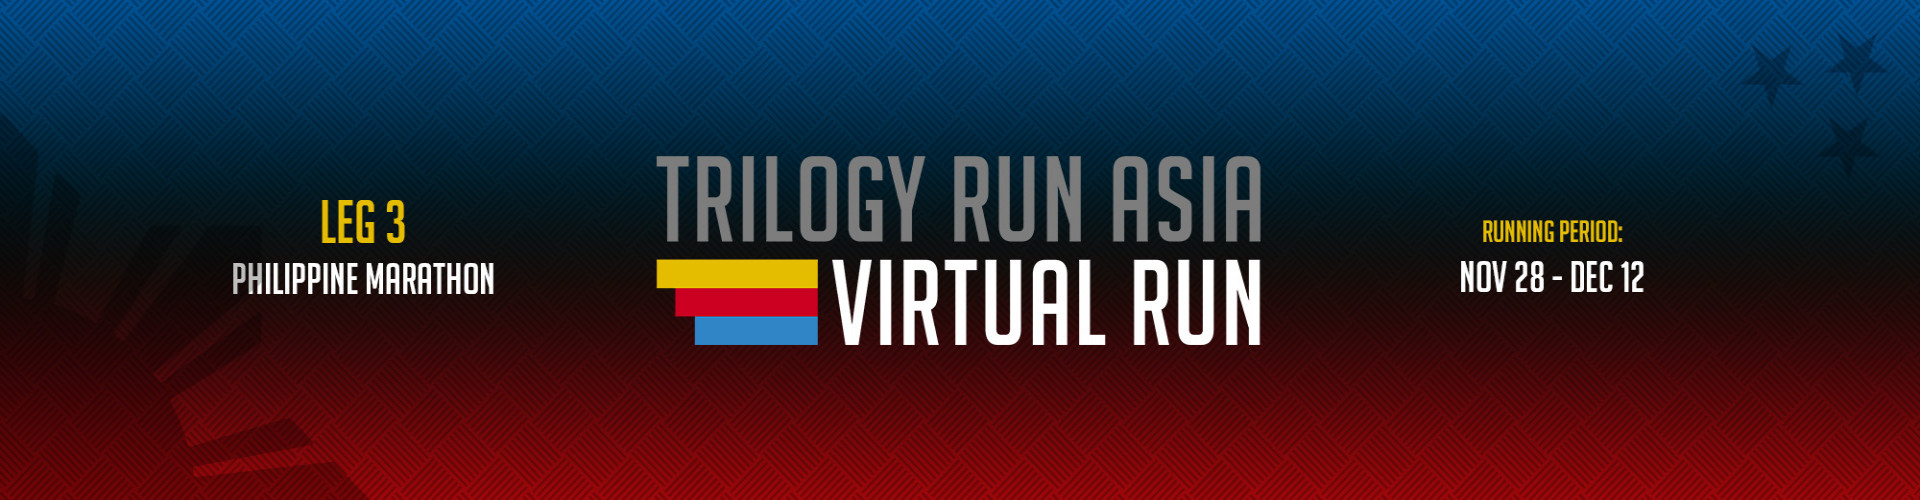 Trilogy Run Asia Leg 3 VR